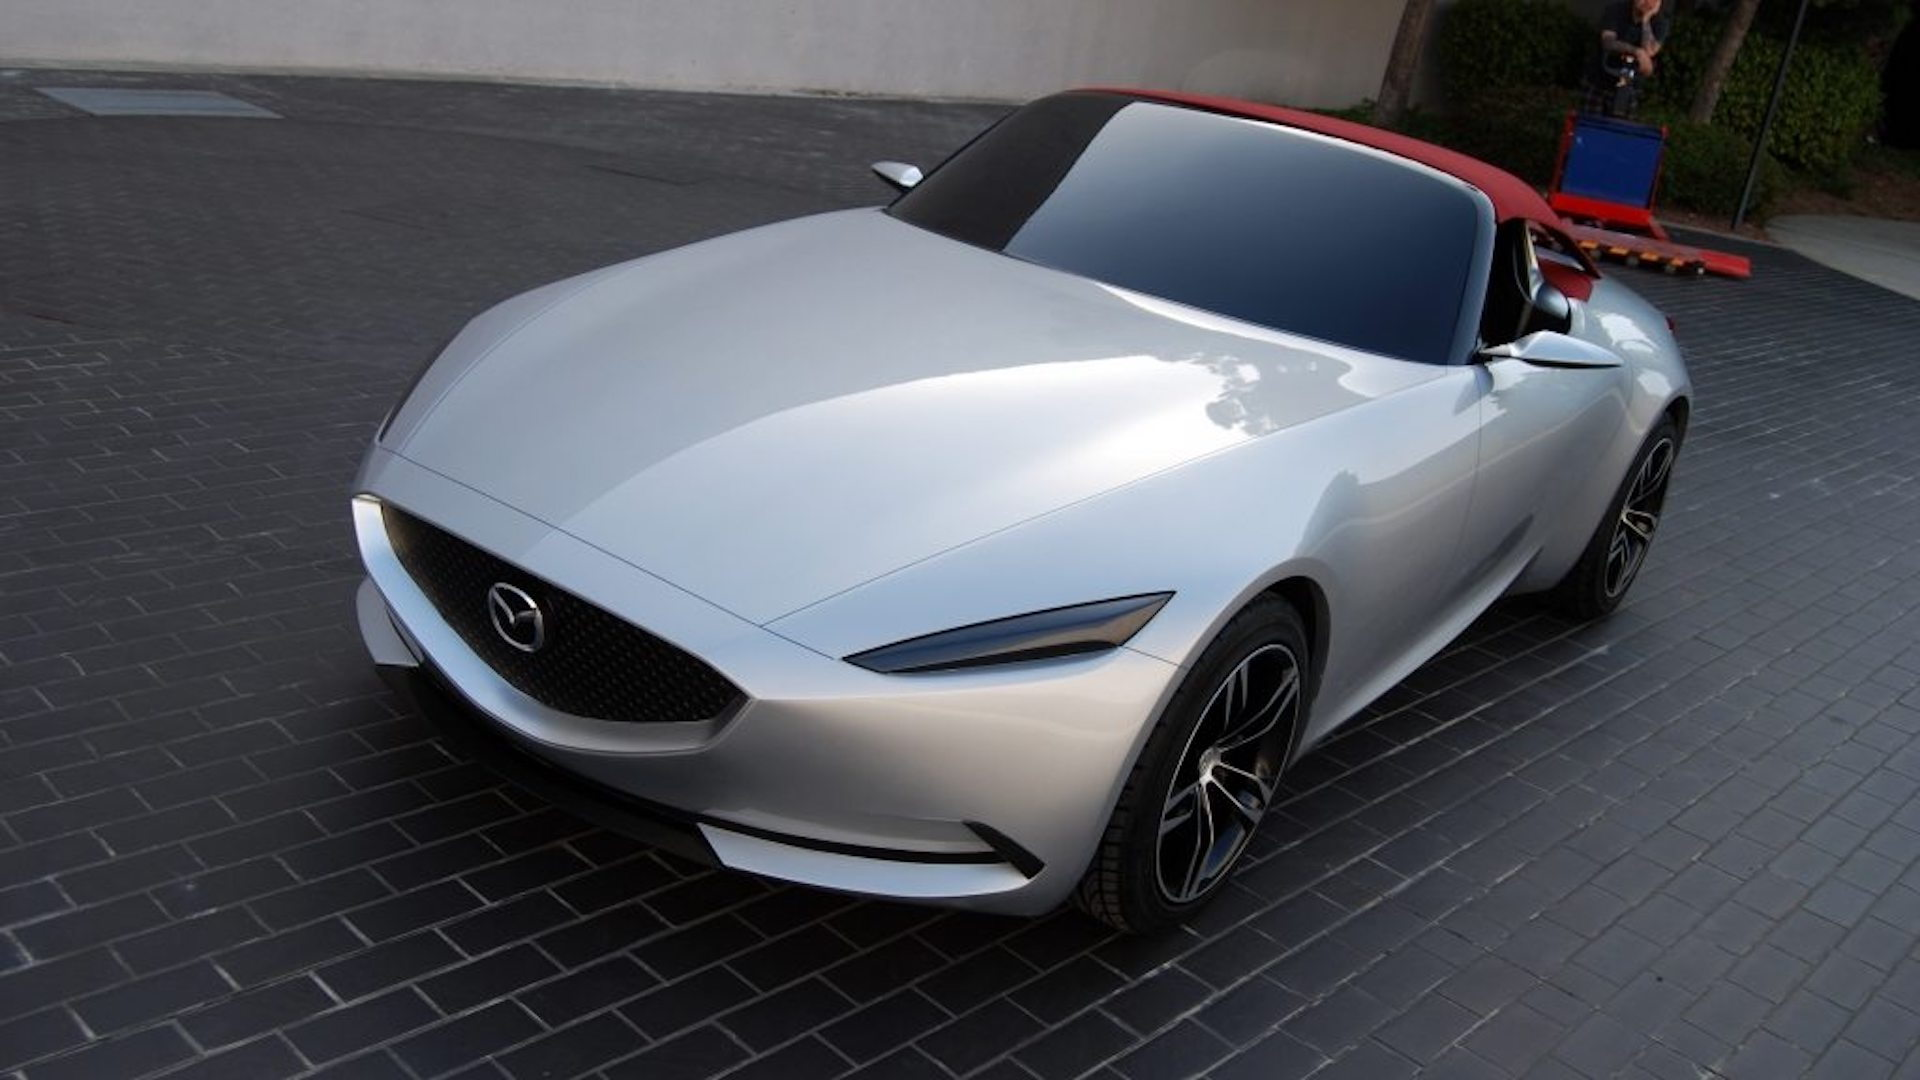 Mazda MX-5 Miata American design proposal